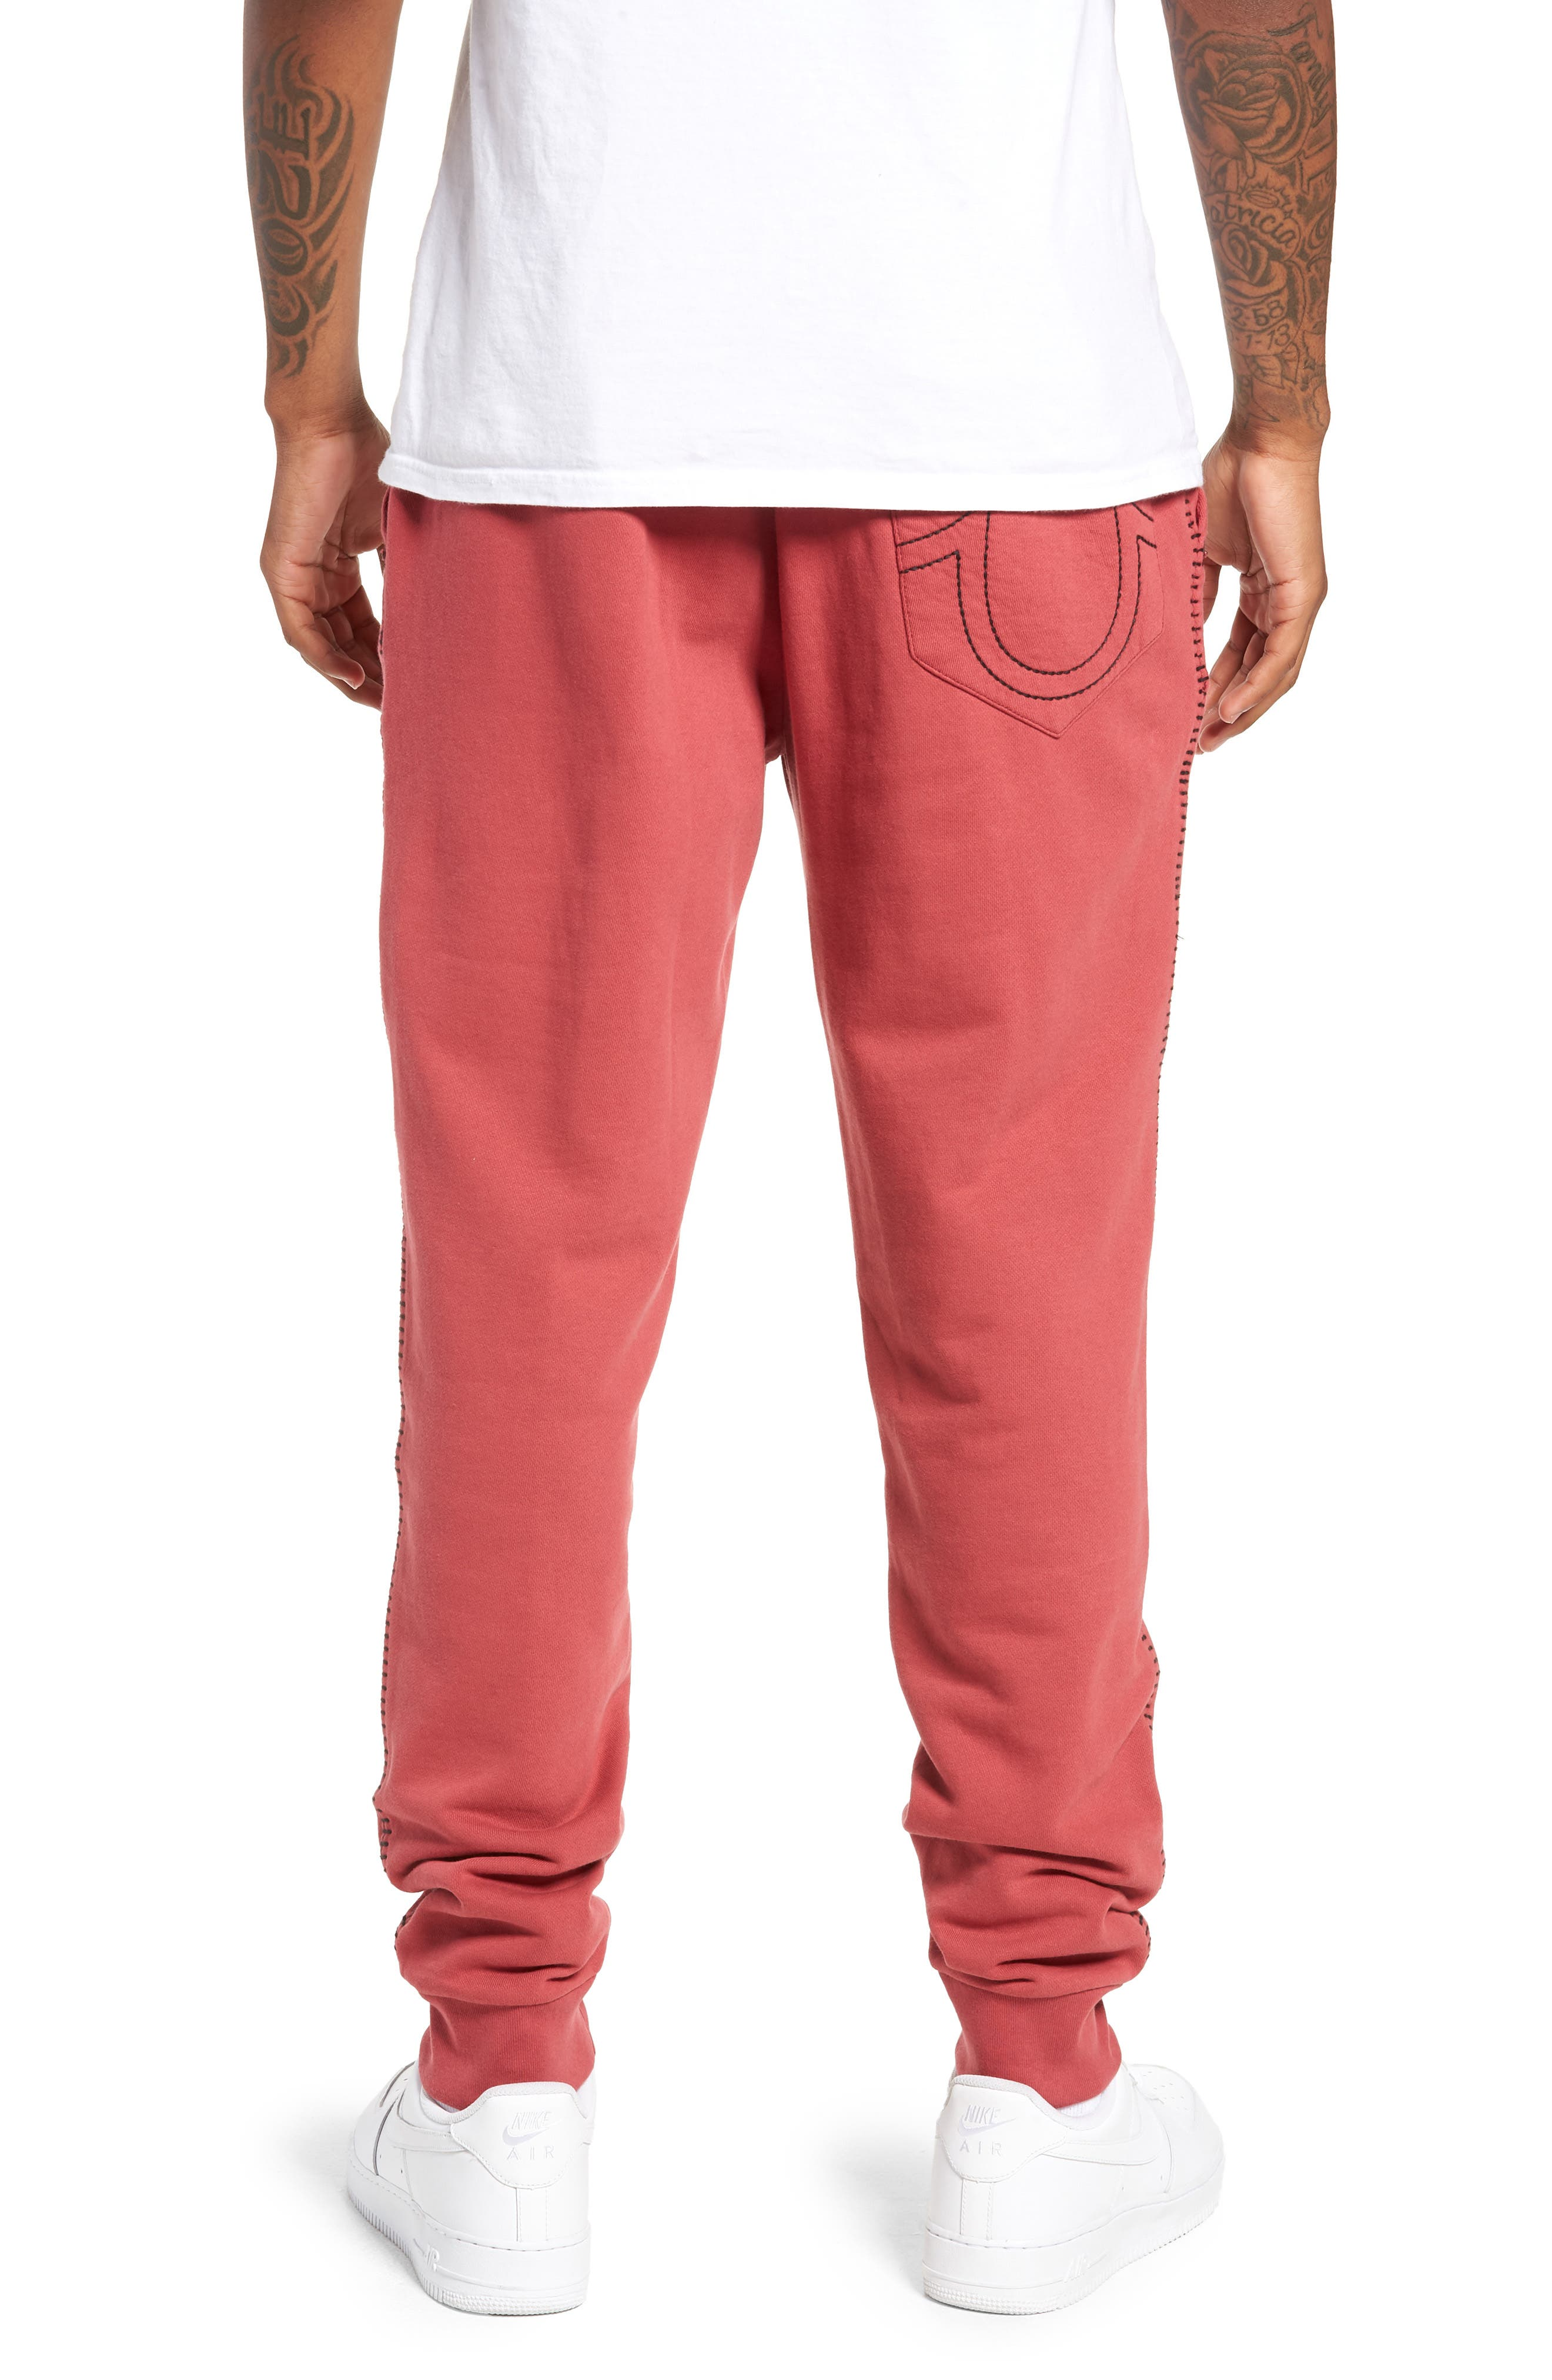 Metallic Buddha Sweatpants,                             Alternate thumbnail 2, color,                             GOTH RED